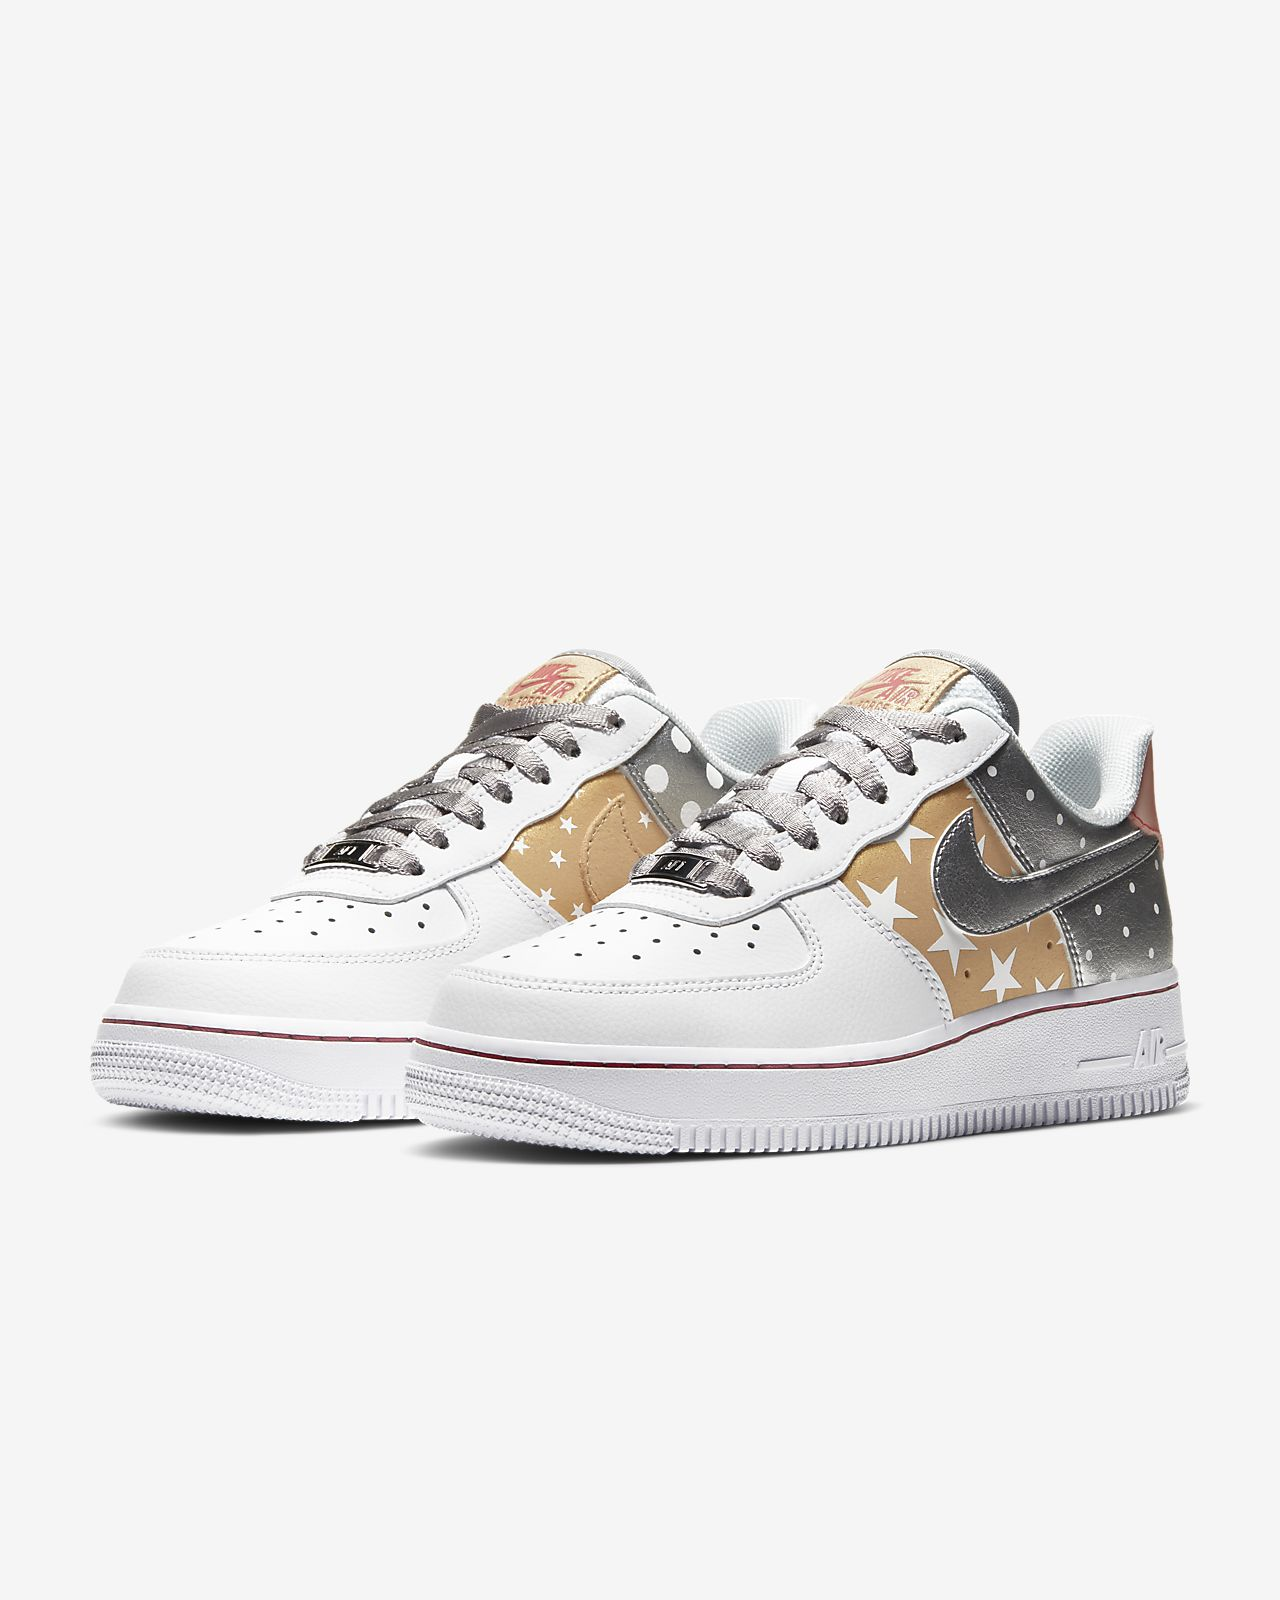 Nike Air Force 1 Silver Gold Festive | CT3437 100